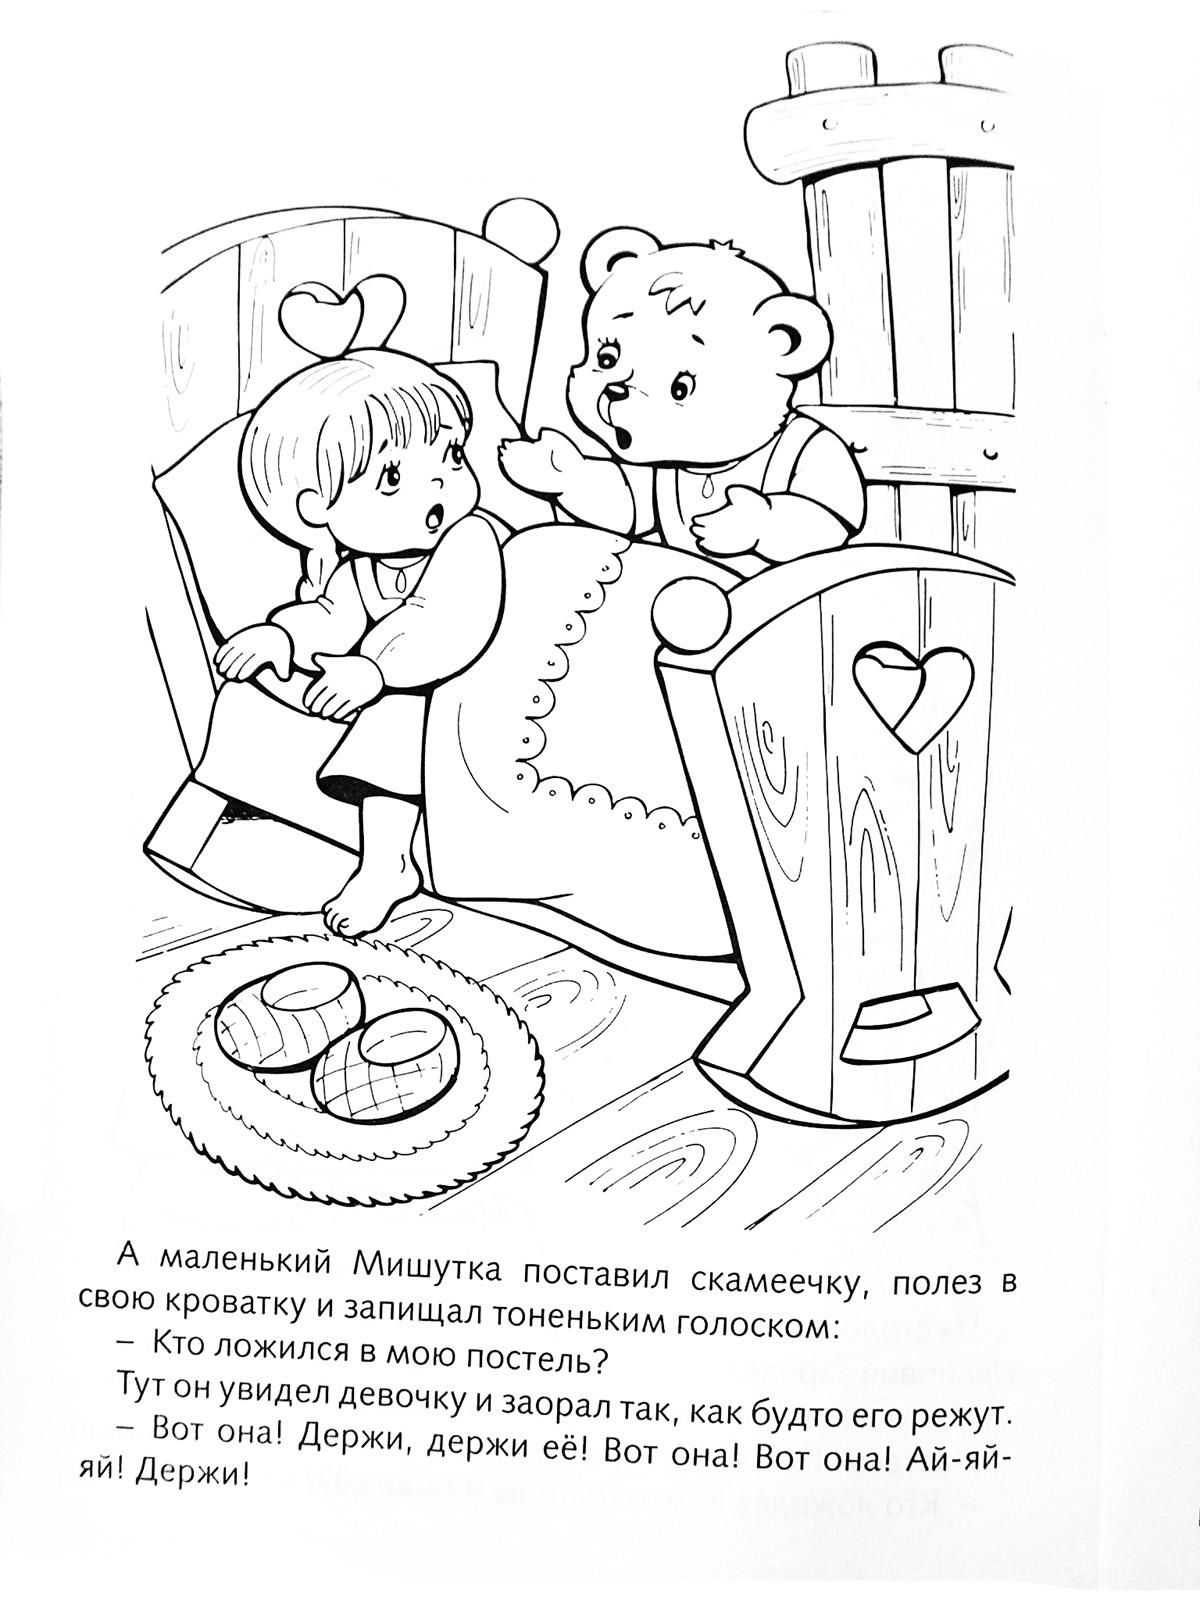 Coloring coloring pages to the tale of three bears Three Bears, a girl and a teddy bear, a fairy tale coloring pages